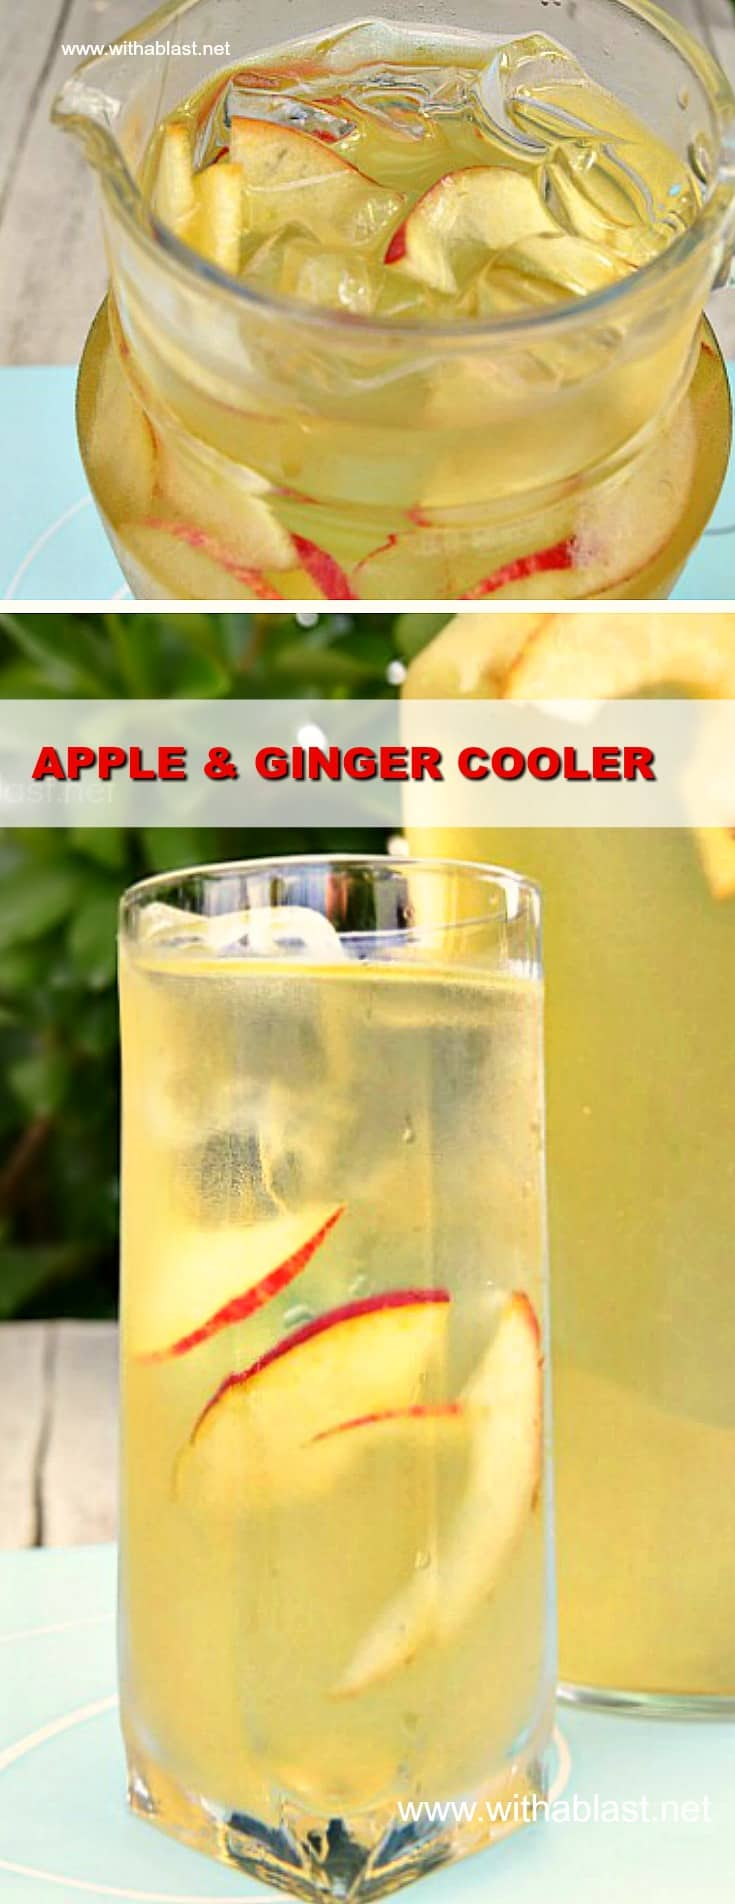 Apple and Ginger Cooler can be made in advance and is not only a delicious, refreshing drink, but also helps with heartburn (kid-friendly too!) #AppleDrink #GingerDrink #MakeAheadRecipe